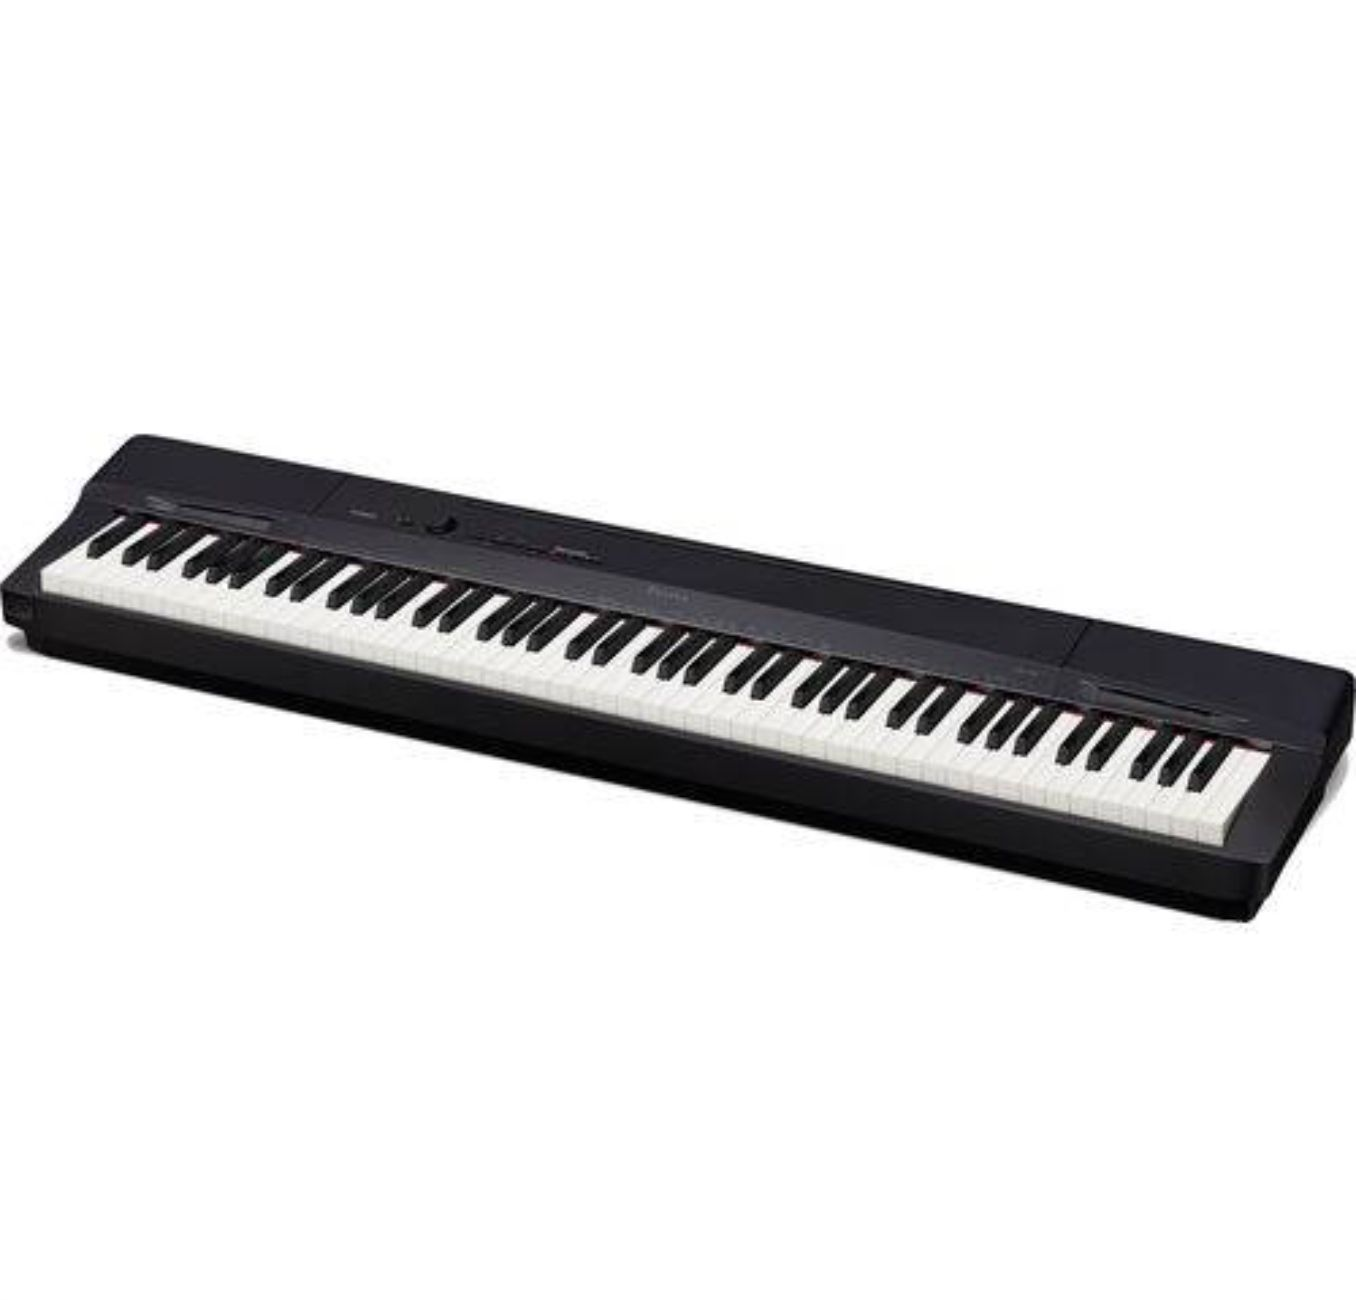 Piano Privia Digital PX-160 BKK2-BR